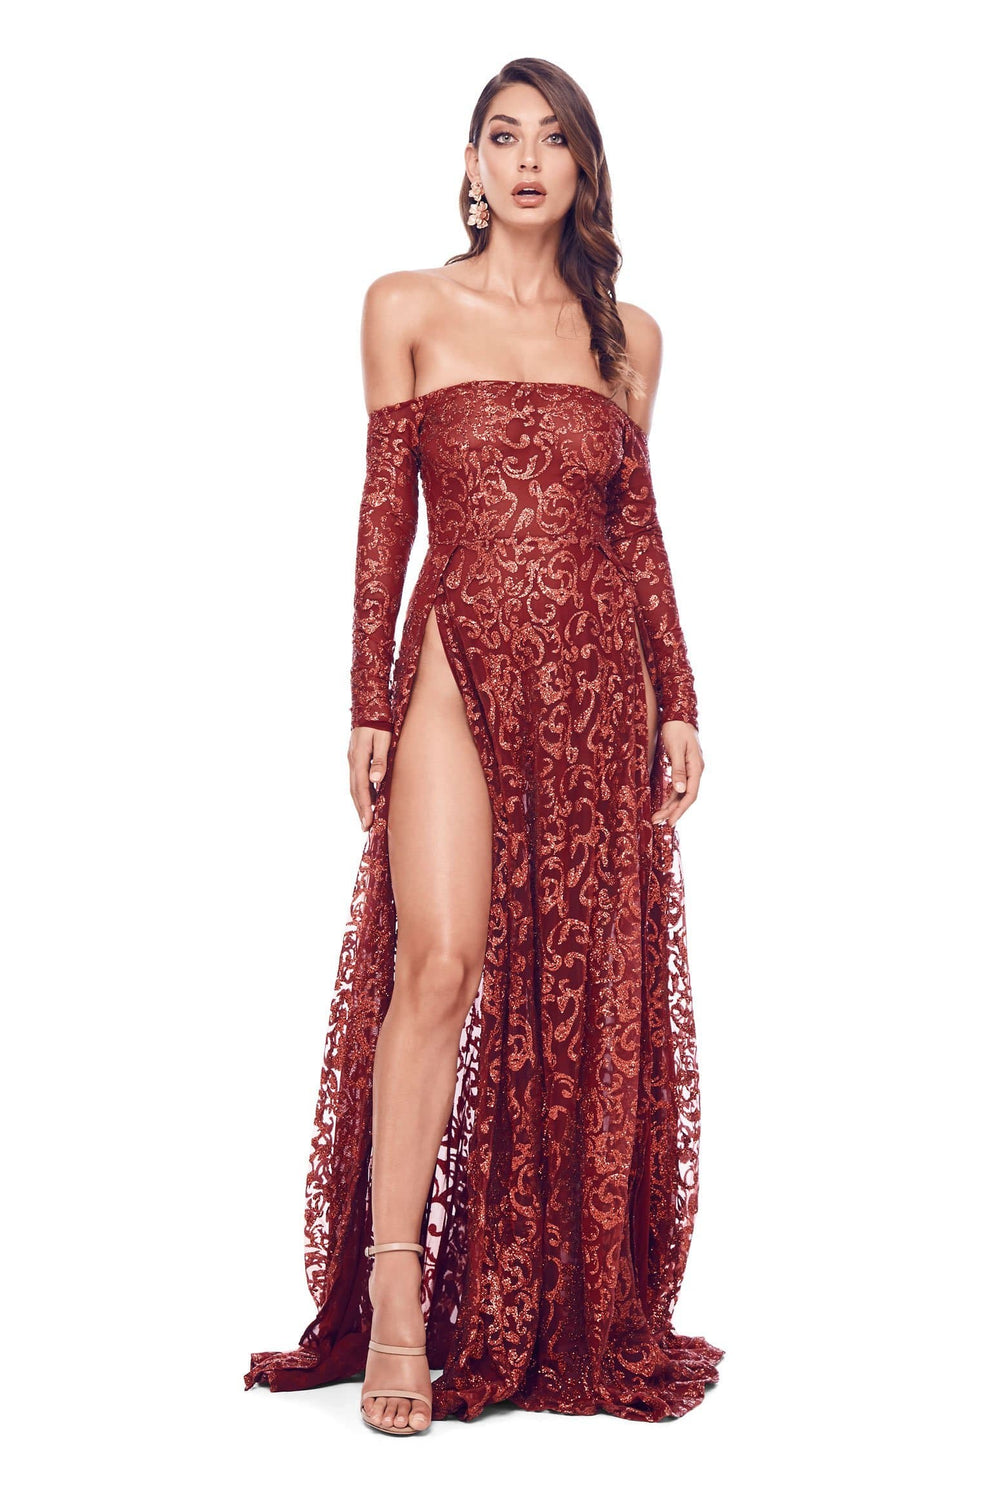 Flame - Wine Red Glitter Gown with Long Off-Shoulder Sleeves